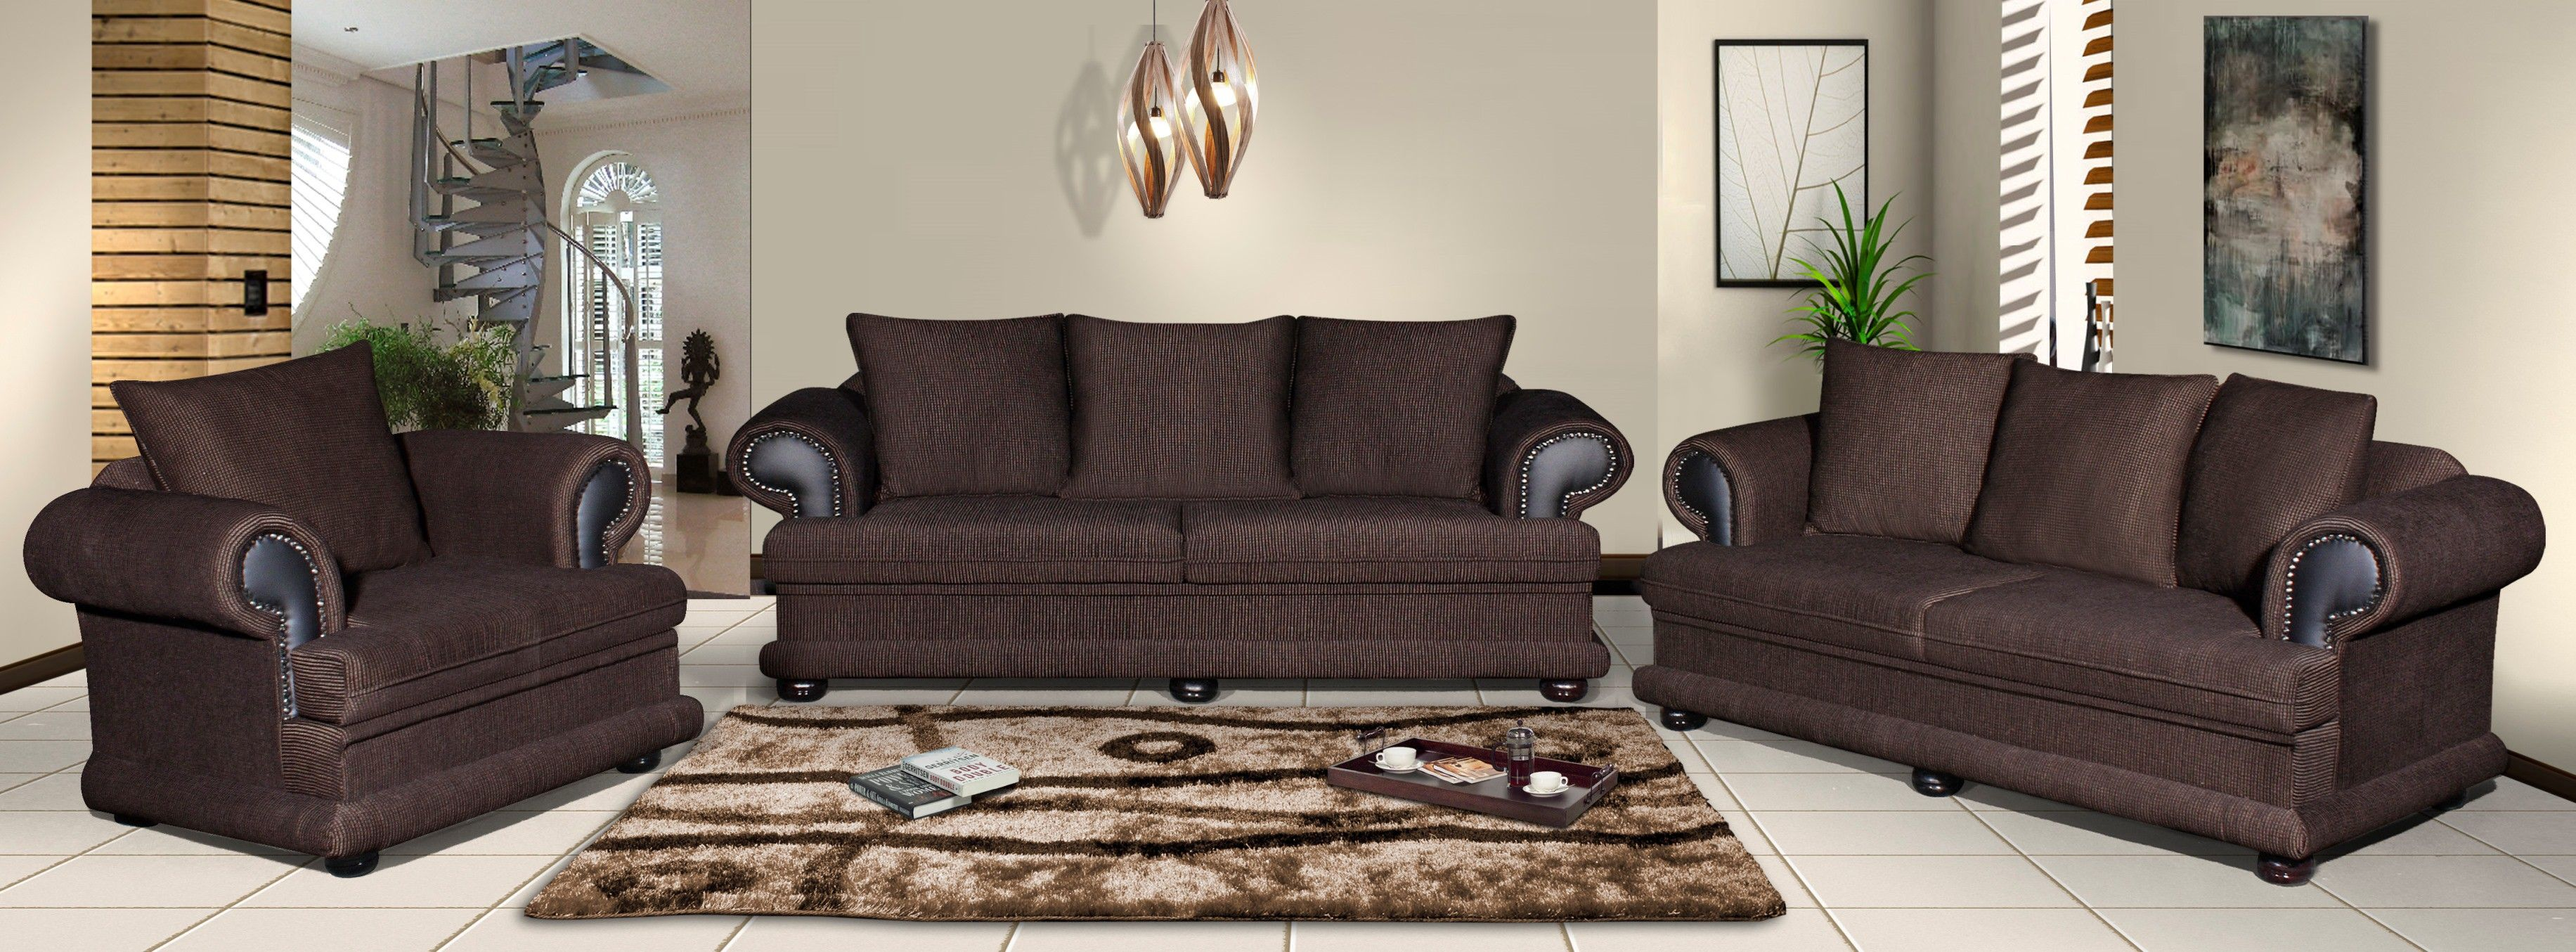 Sabatini 3pce L S Choc G In Suites Lounge Furniture